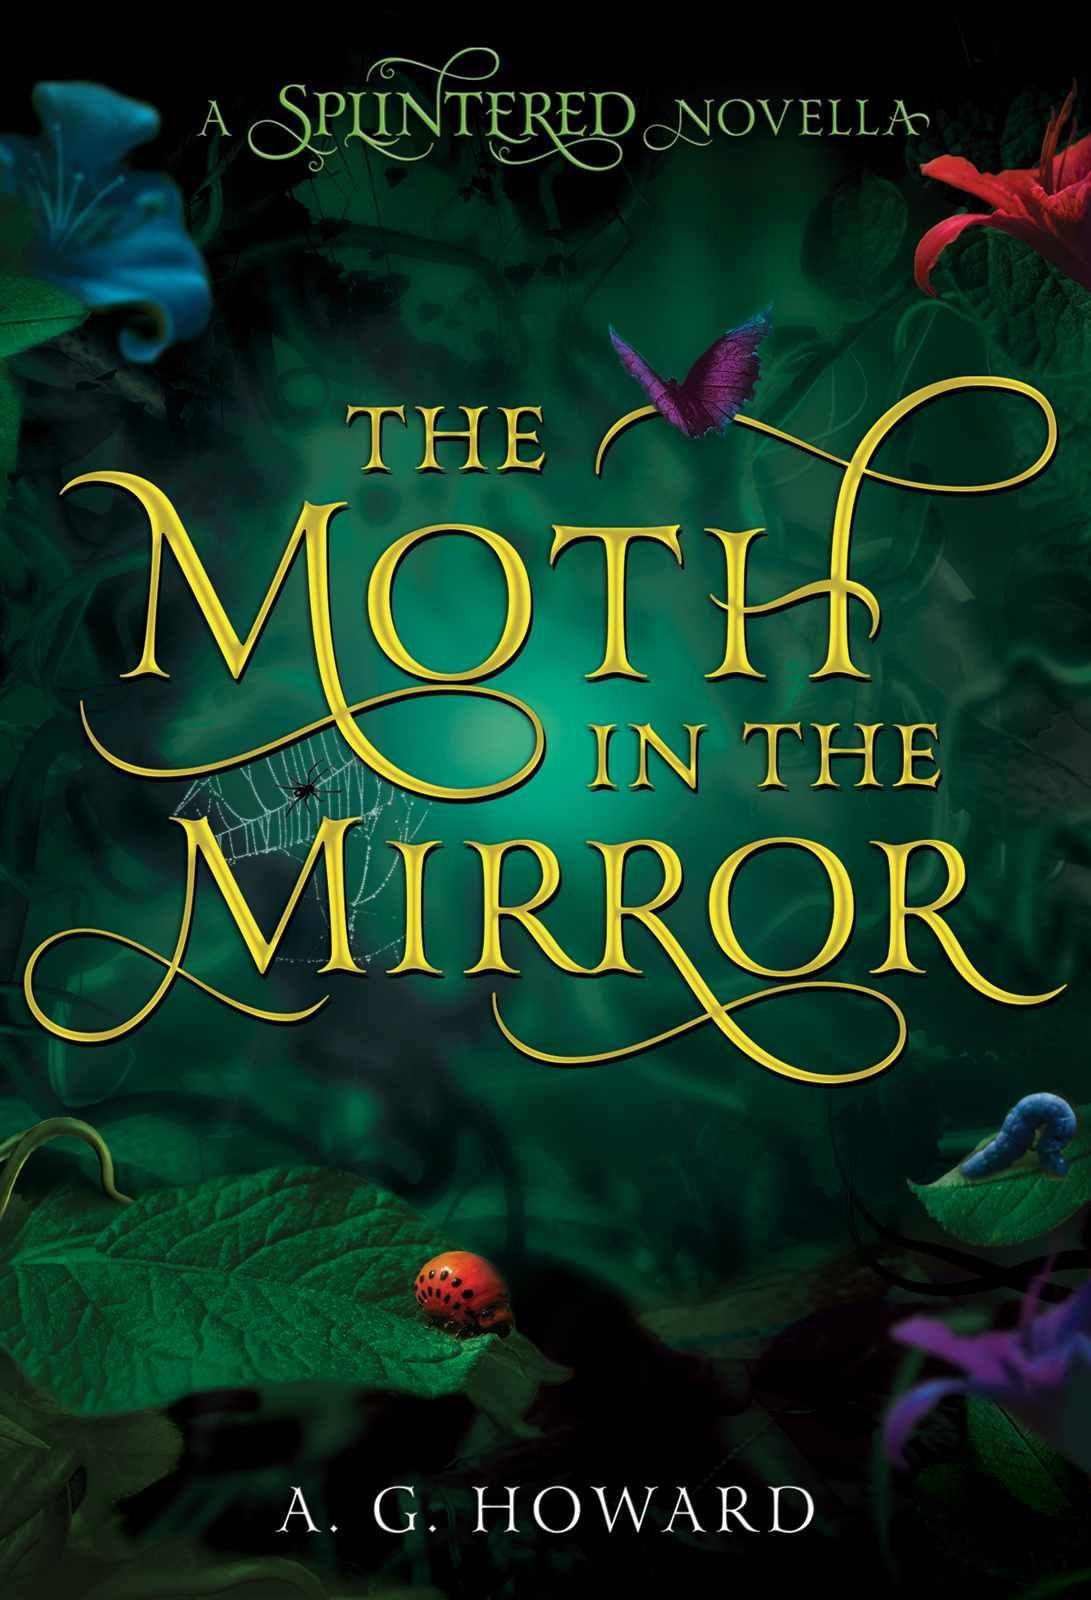 Amazon: The Moth In The Mirror (splintered) Ebook: A G Howard